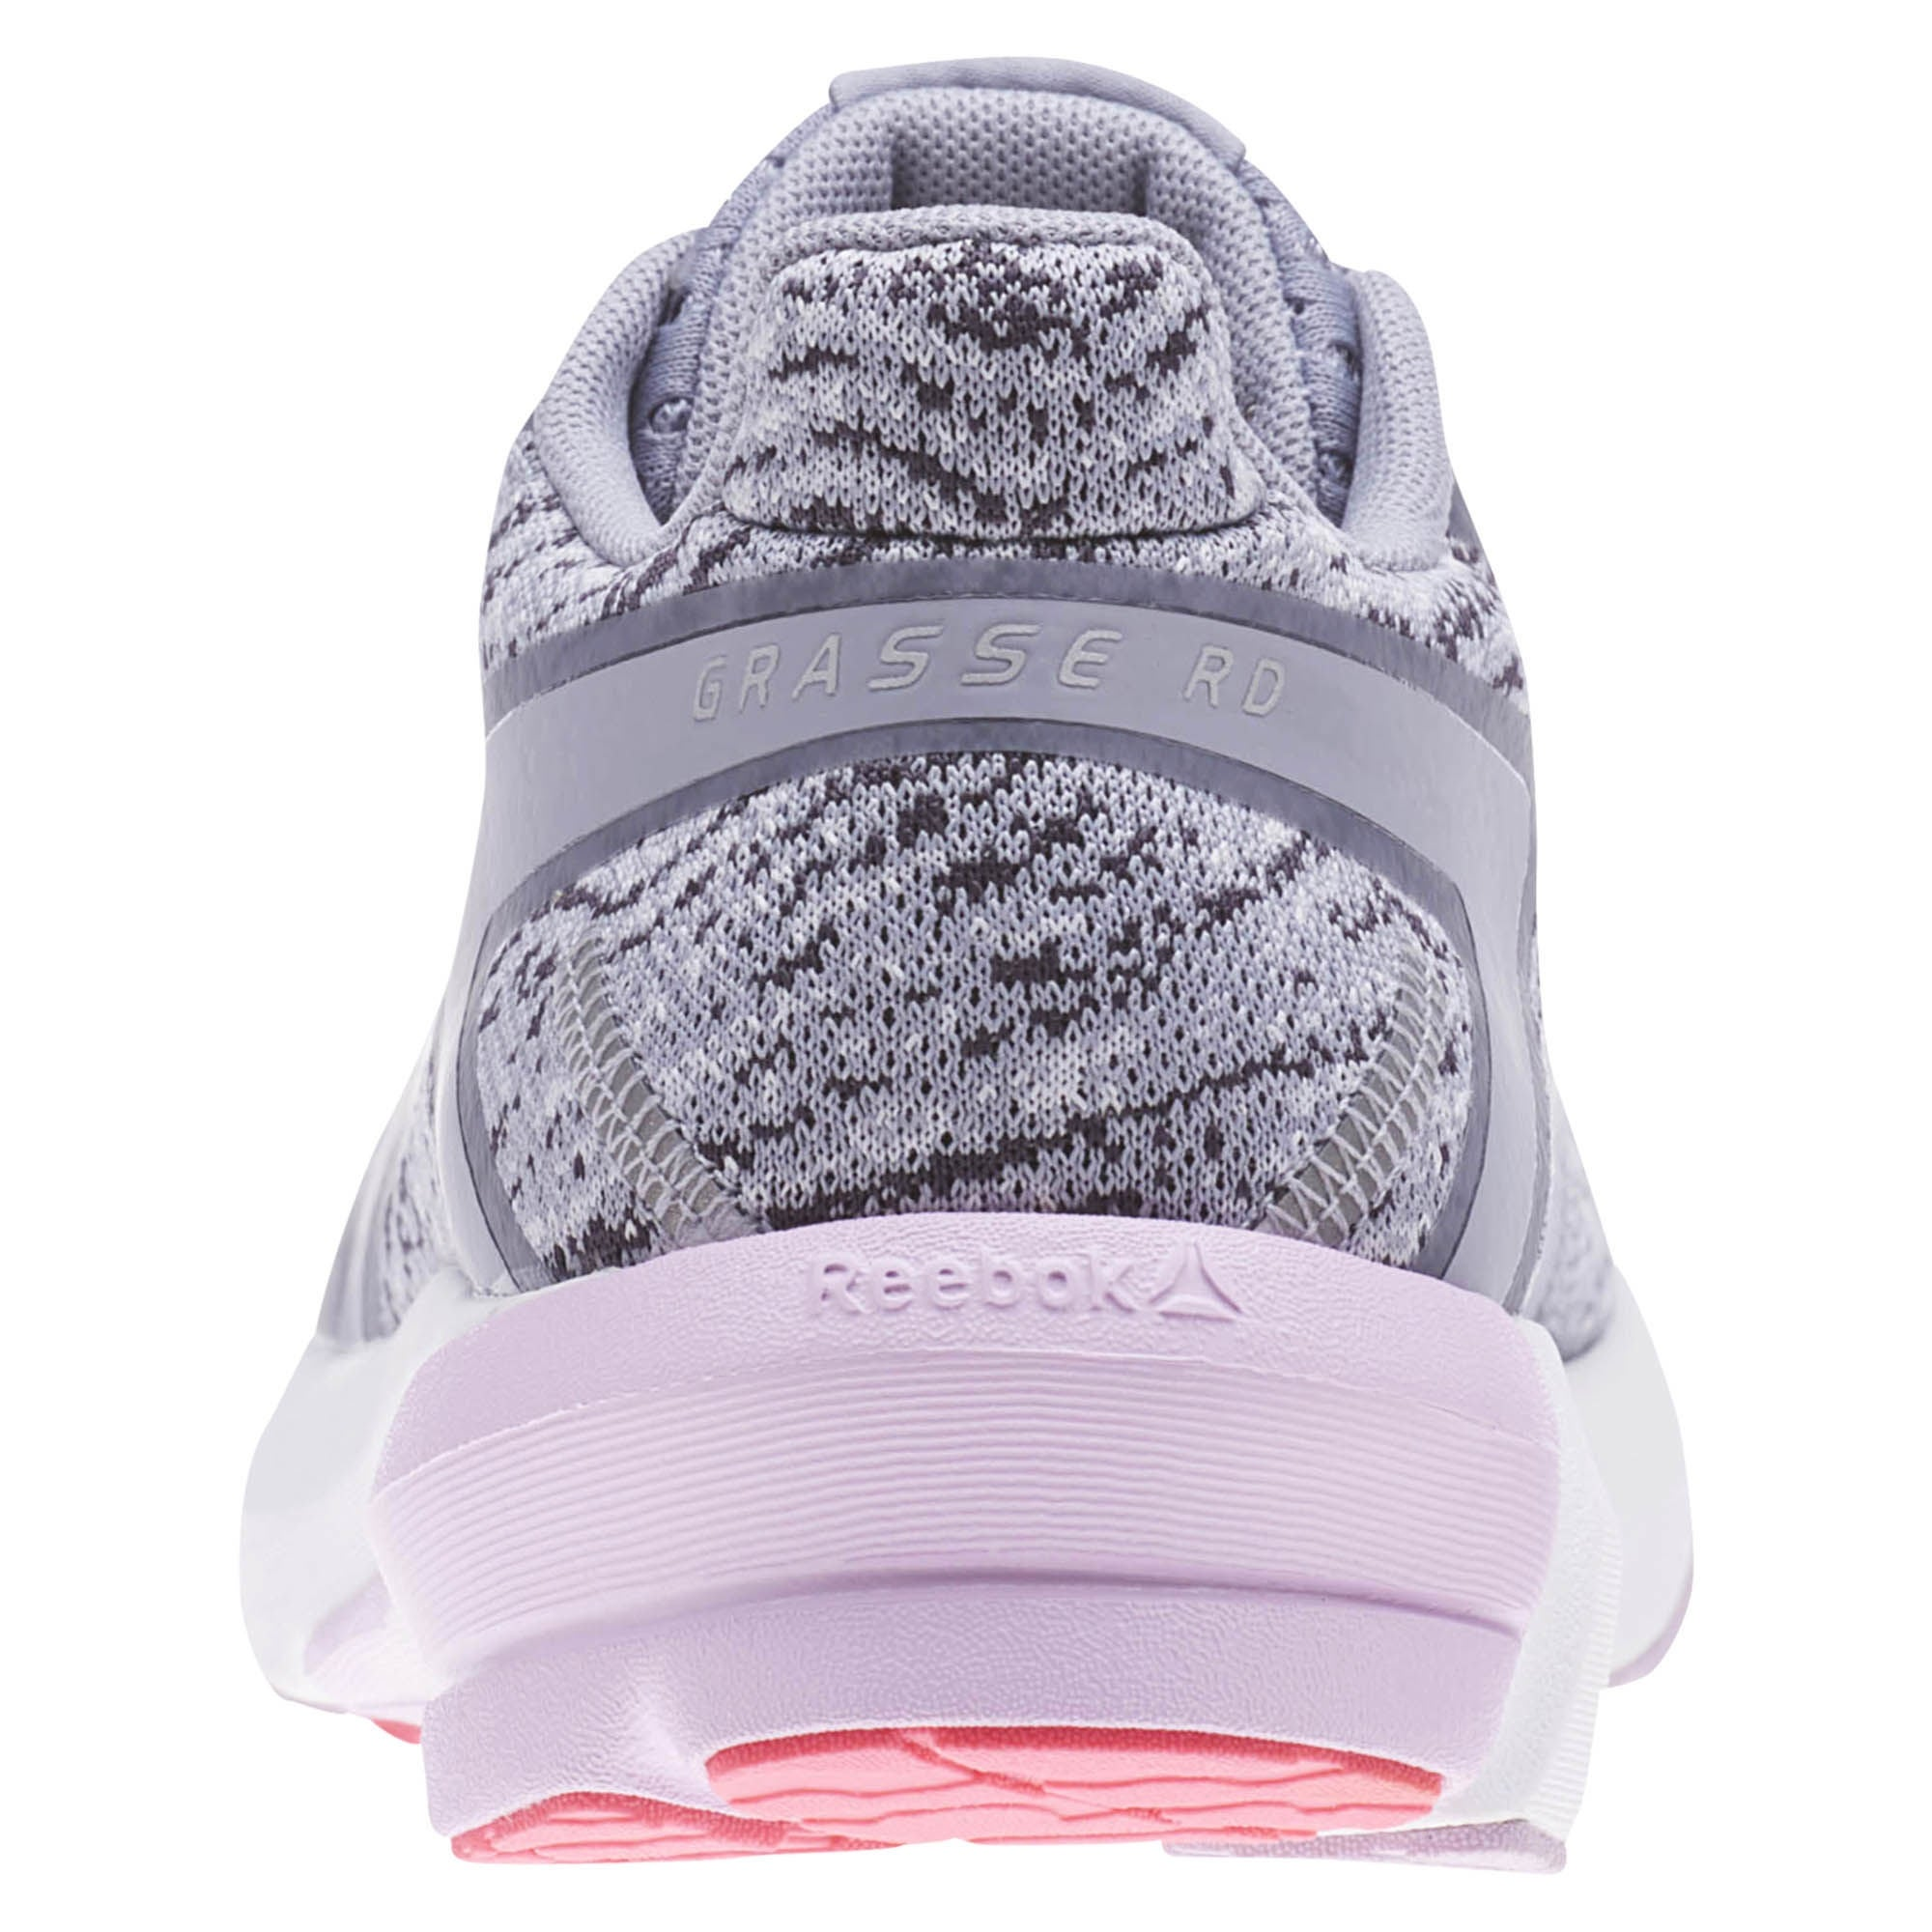 ce6165a0a1c4 Shop Reebok Womens osr grasse road Fabric Low Top Lace Up Running ...